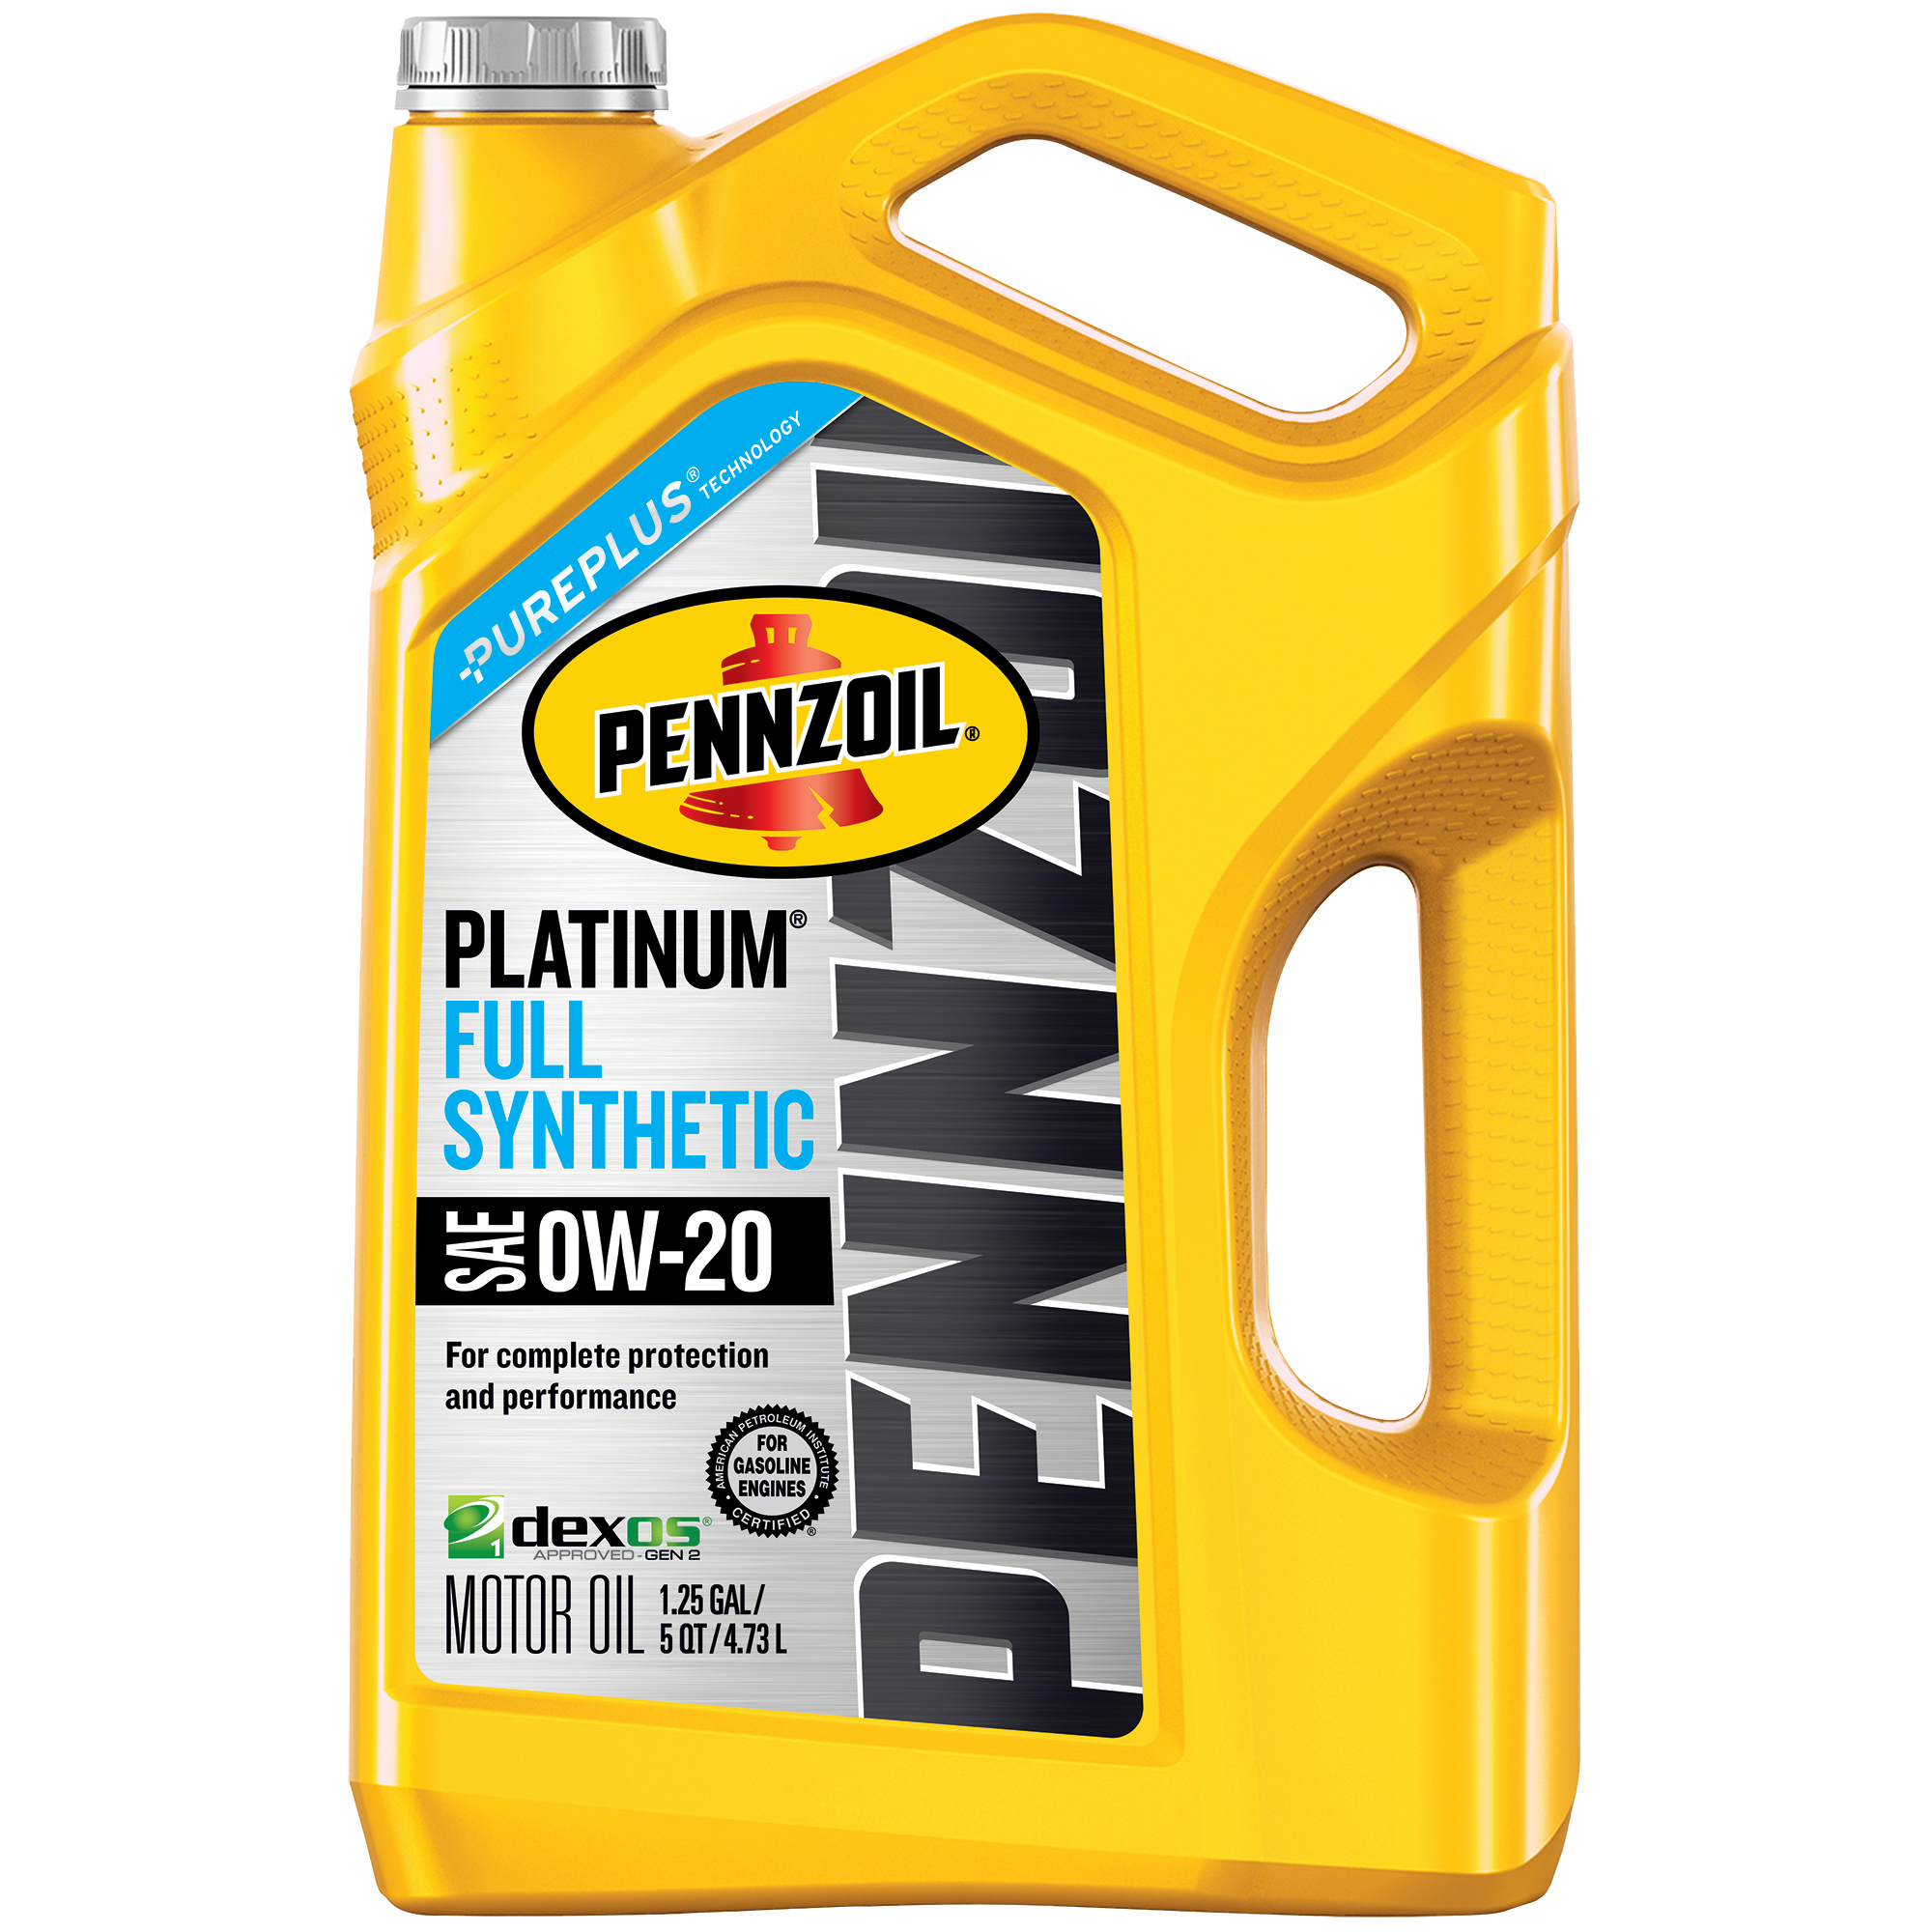 Pennzoil Platinum Full Synthetic Motor Oil From 13 After